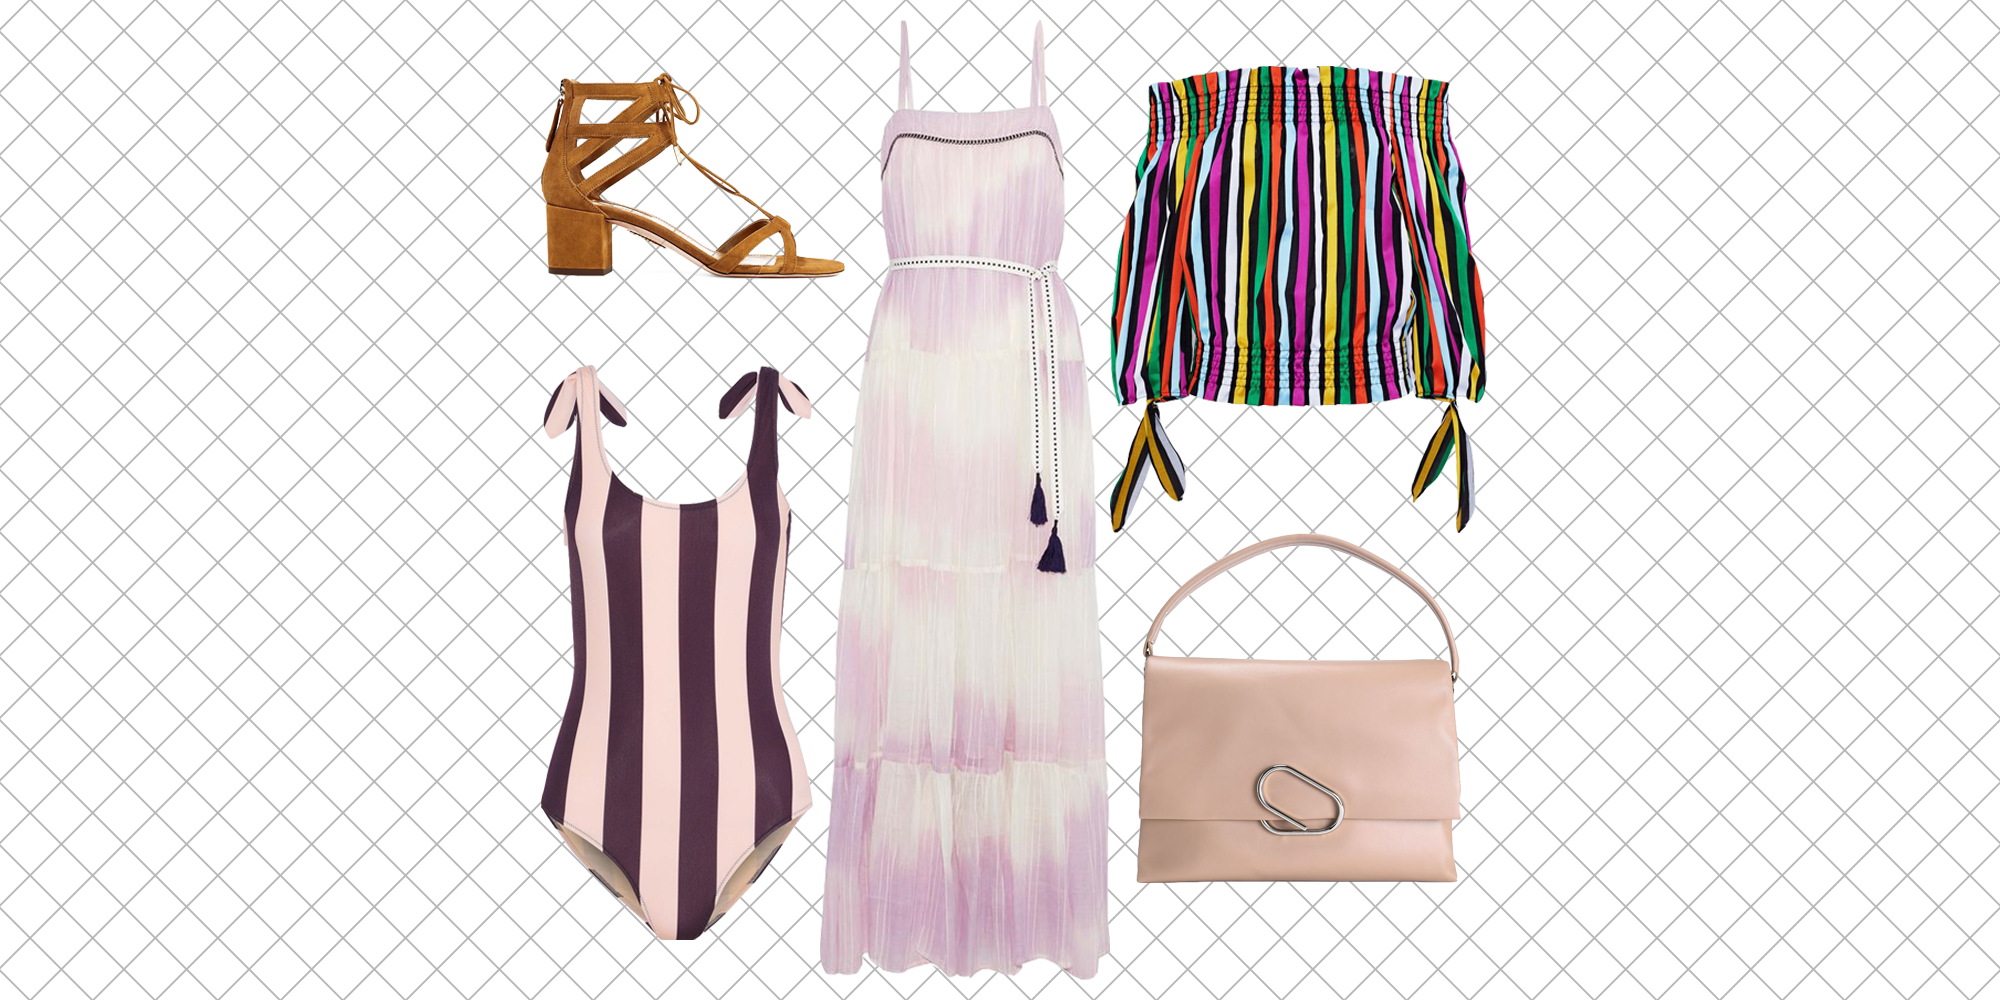 Shop The Outnet's Biggest Sale of the Summer